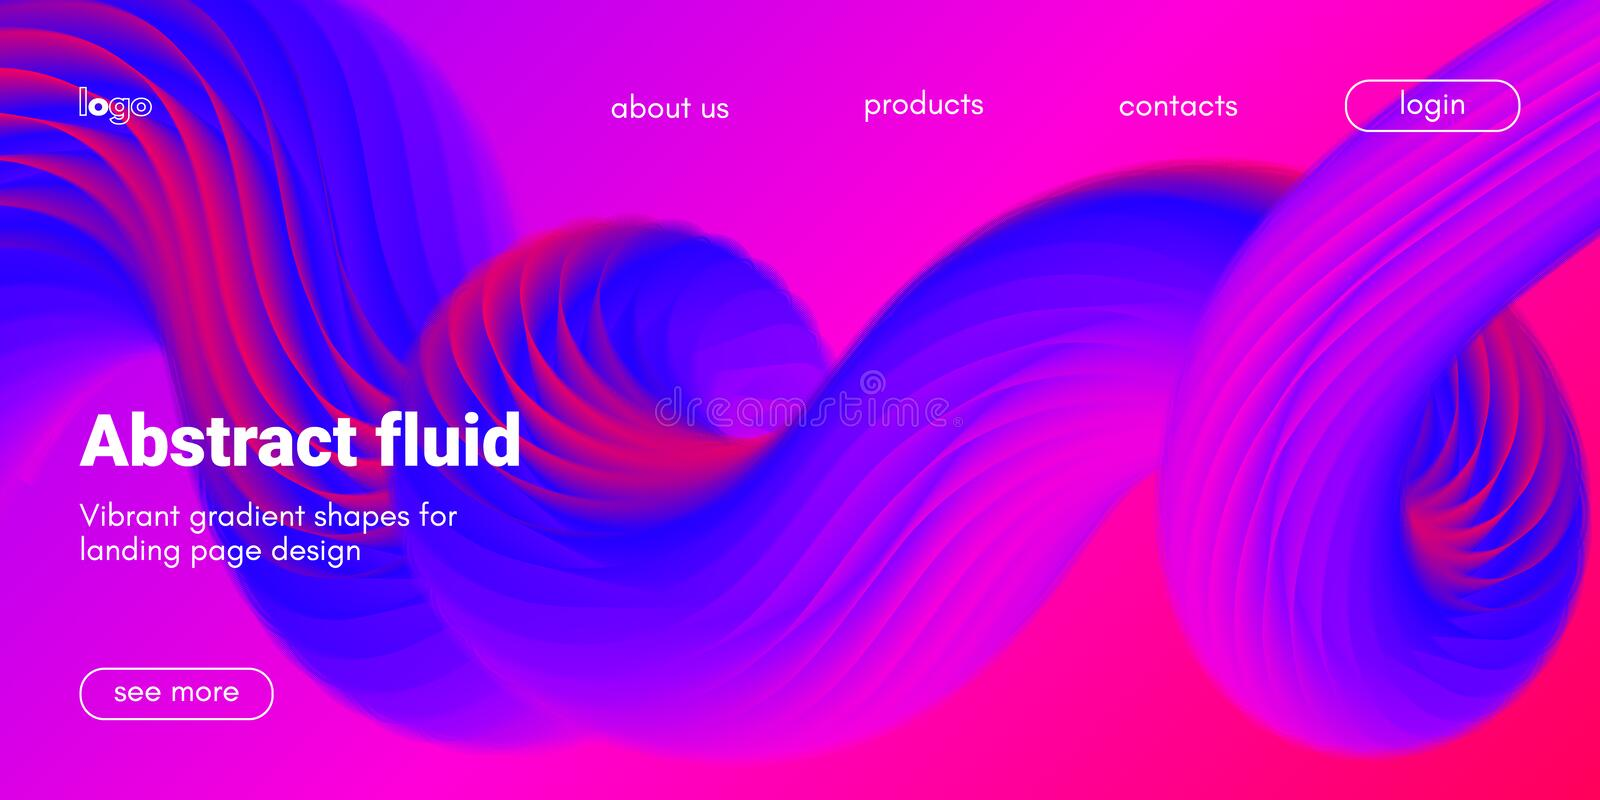 Landing Page Template with Abstract Fluid Shapes. vector illustration